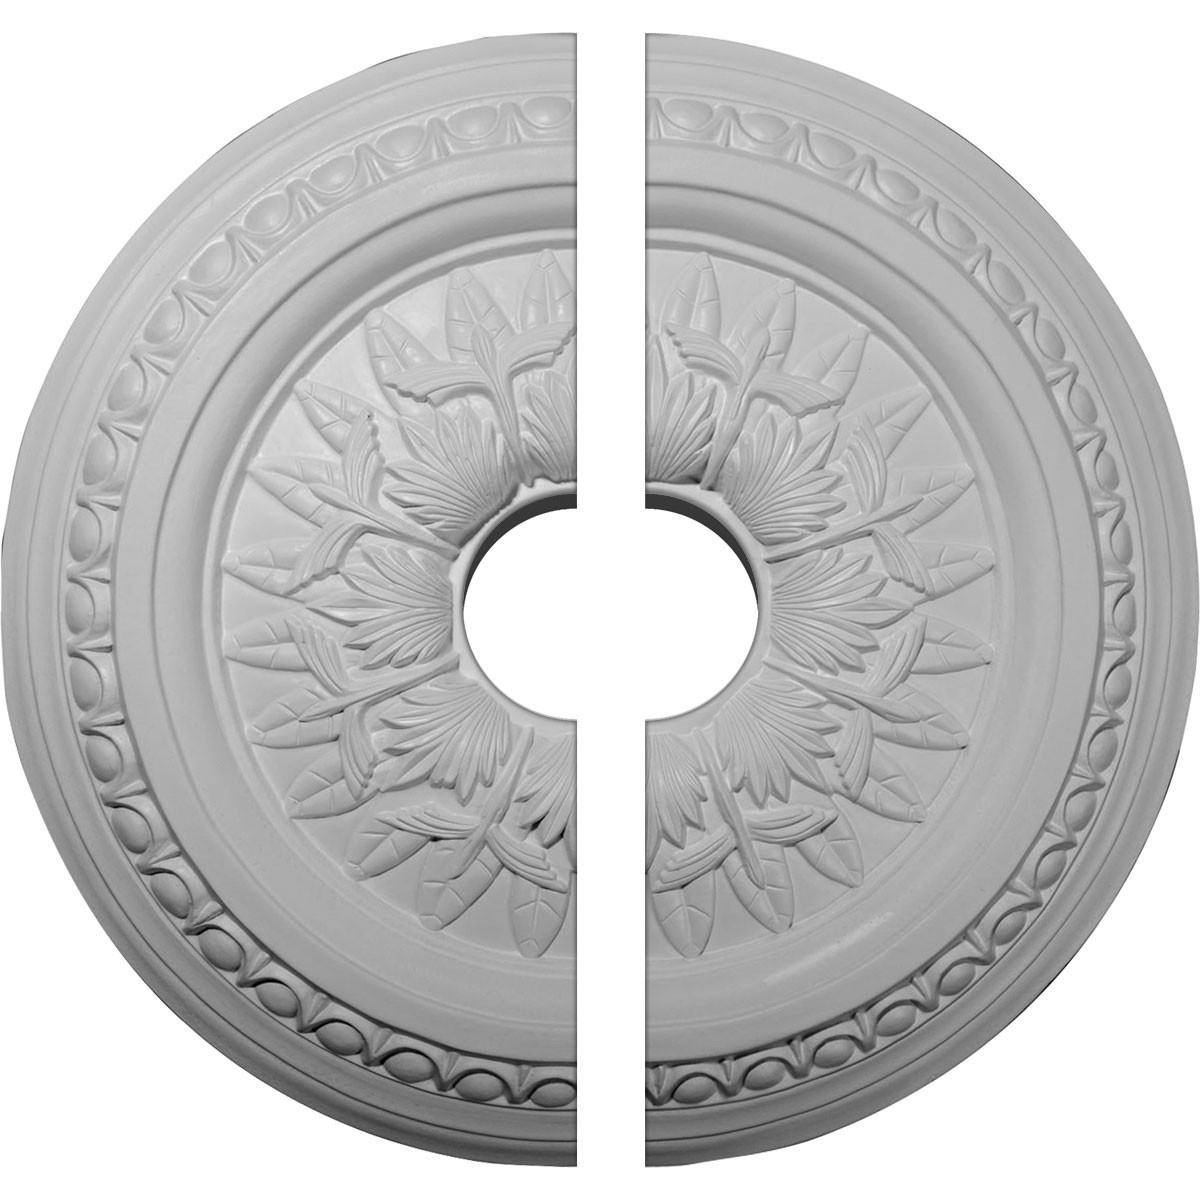 "EM-CM17TE2-03500 - 17 3/4""OD x 3 1/2""ID x 1 1/2""P Telford Ceiling Medallion, Two Piece (Fits Canopies up to 3 3/4"")"